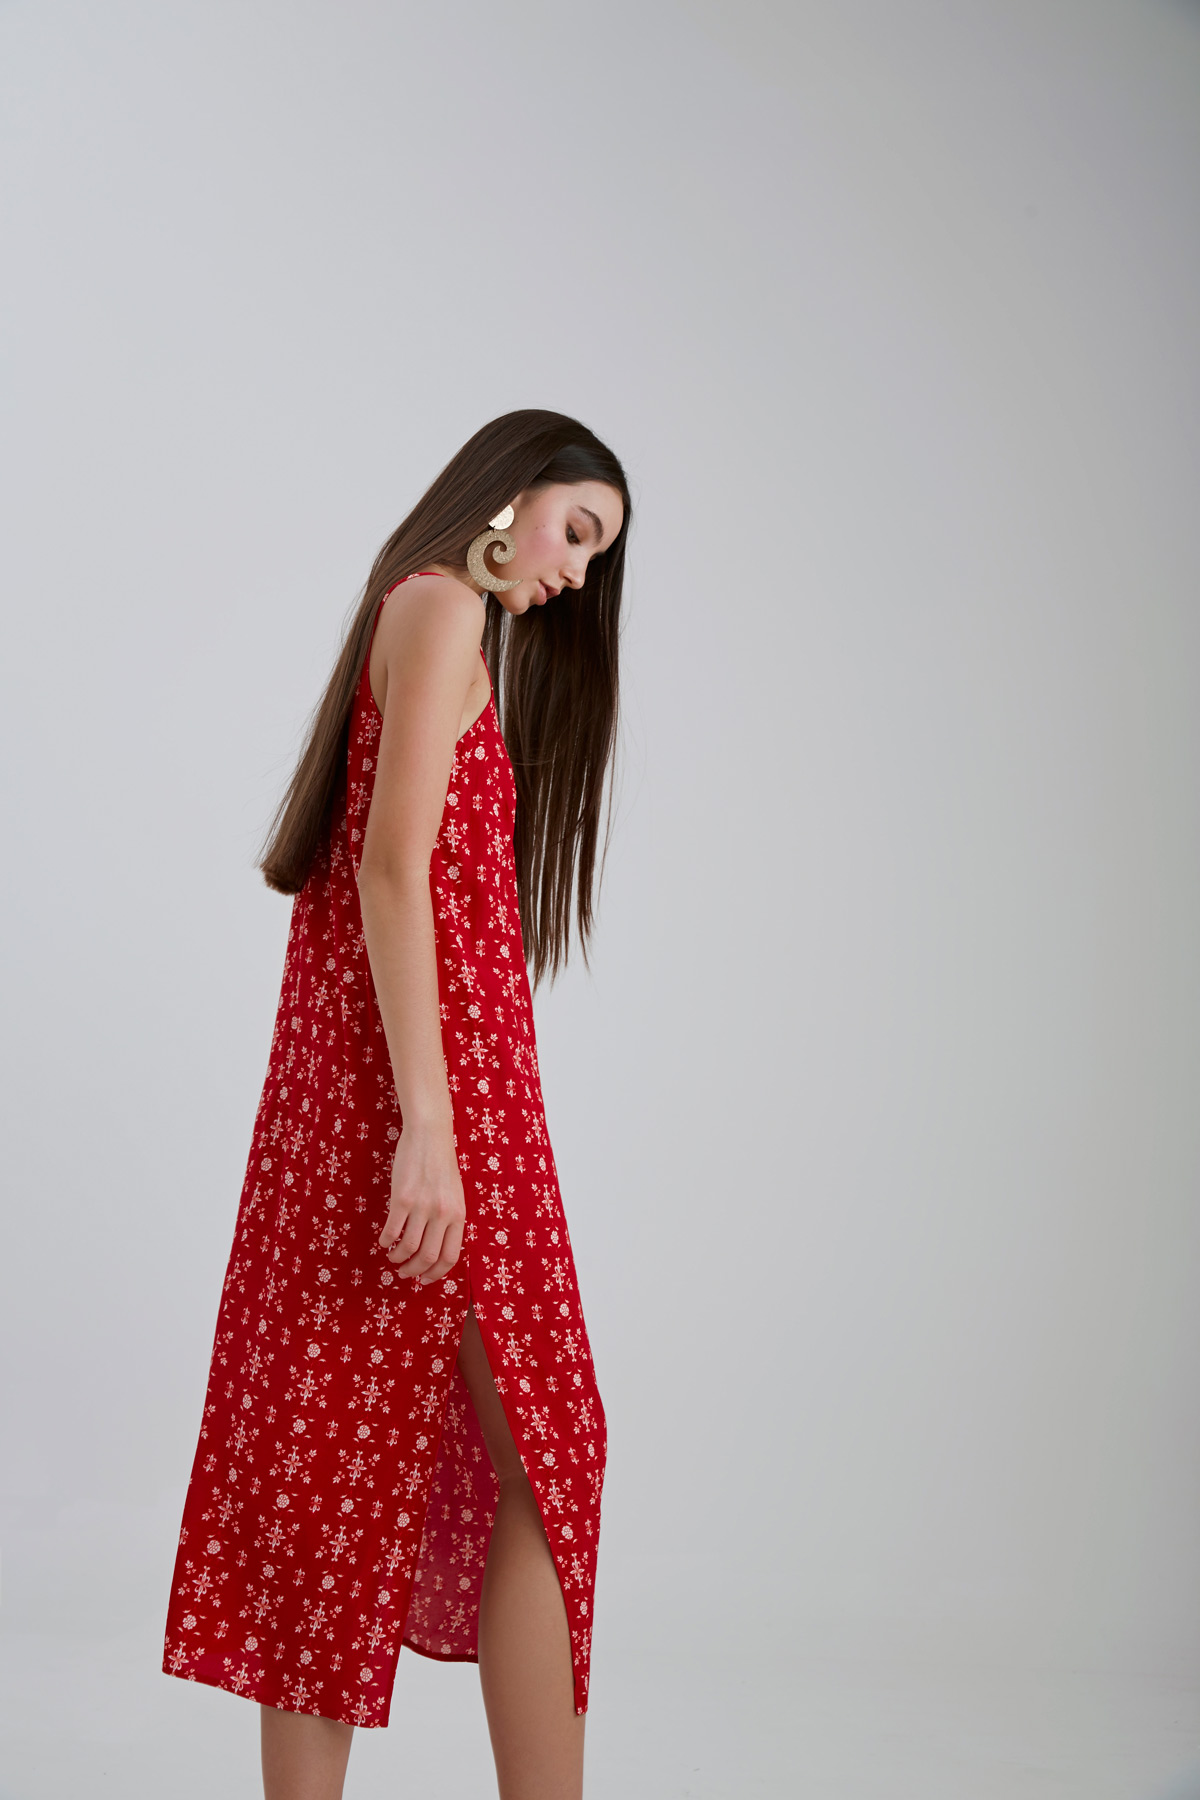 The Fifth Return To Paradise Dress.